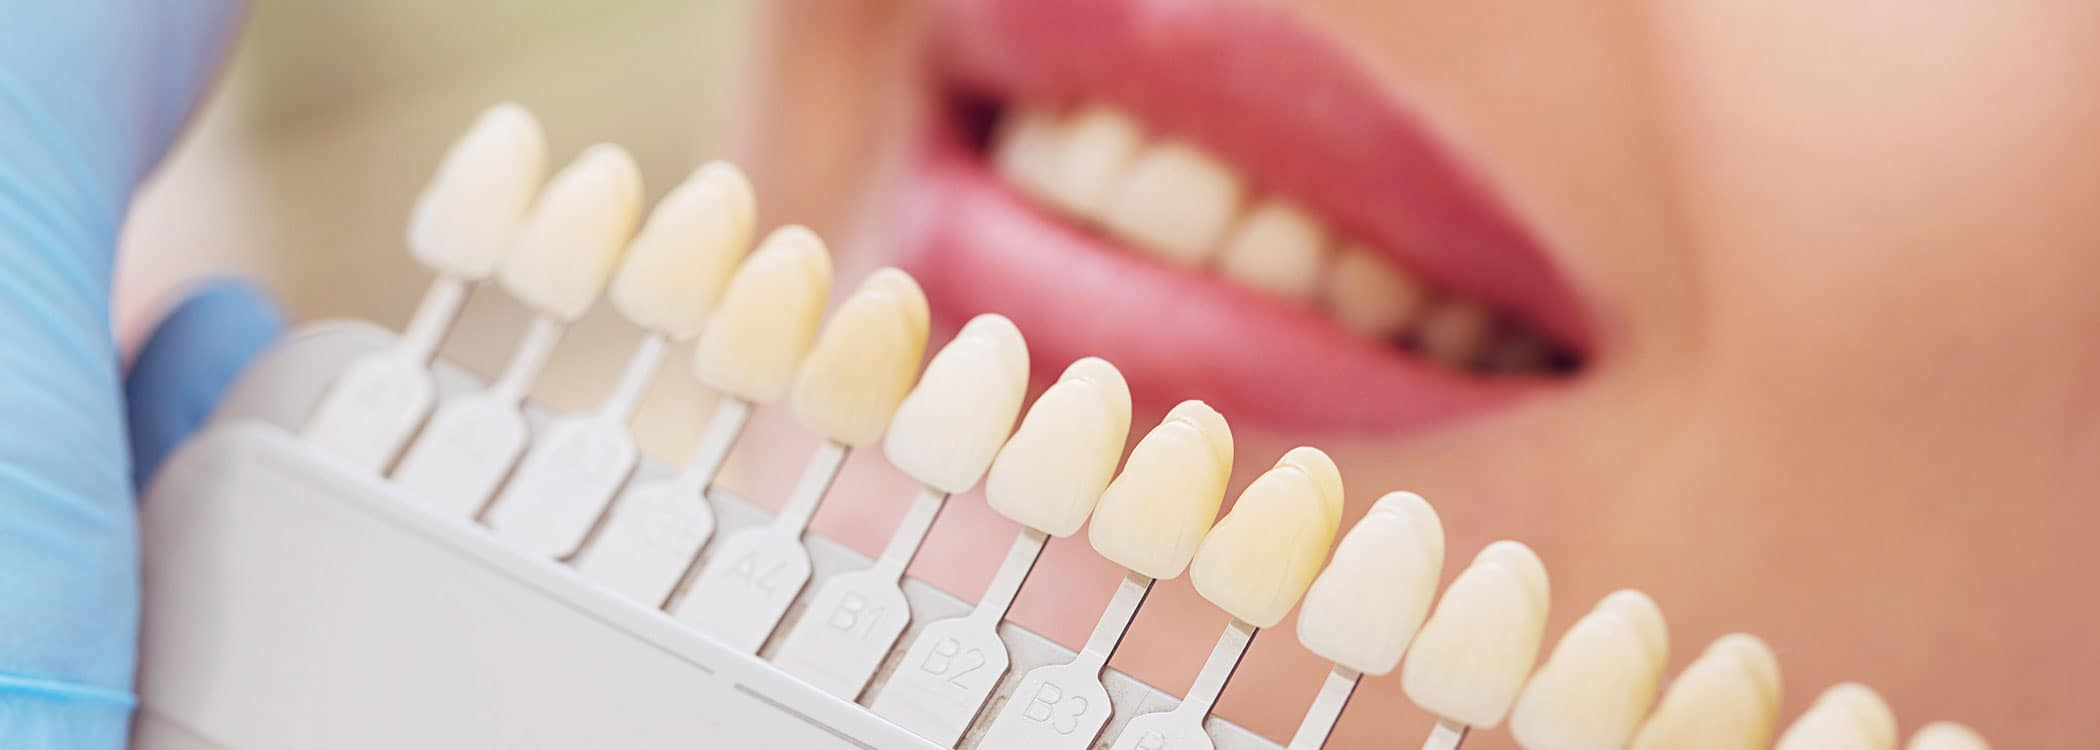 Dental implants - Color samples - Country Dental Clinics